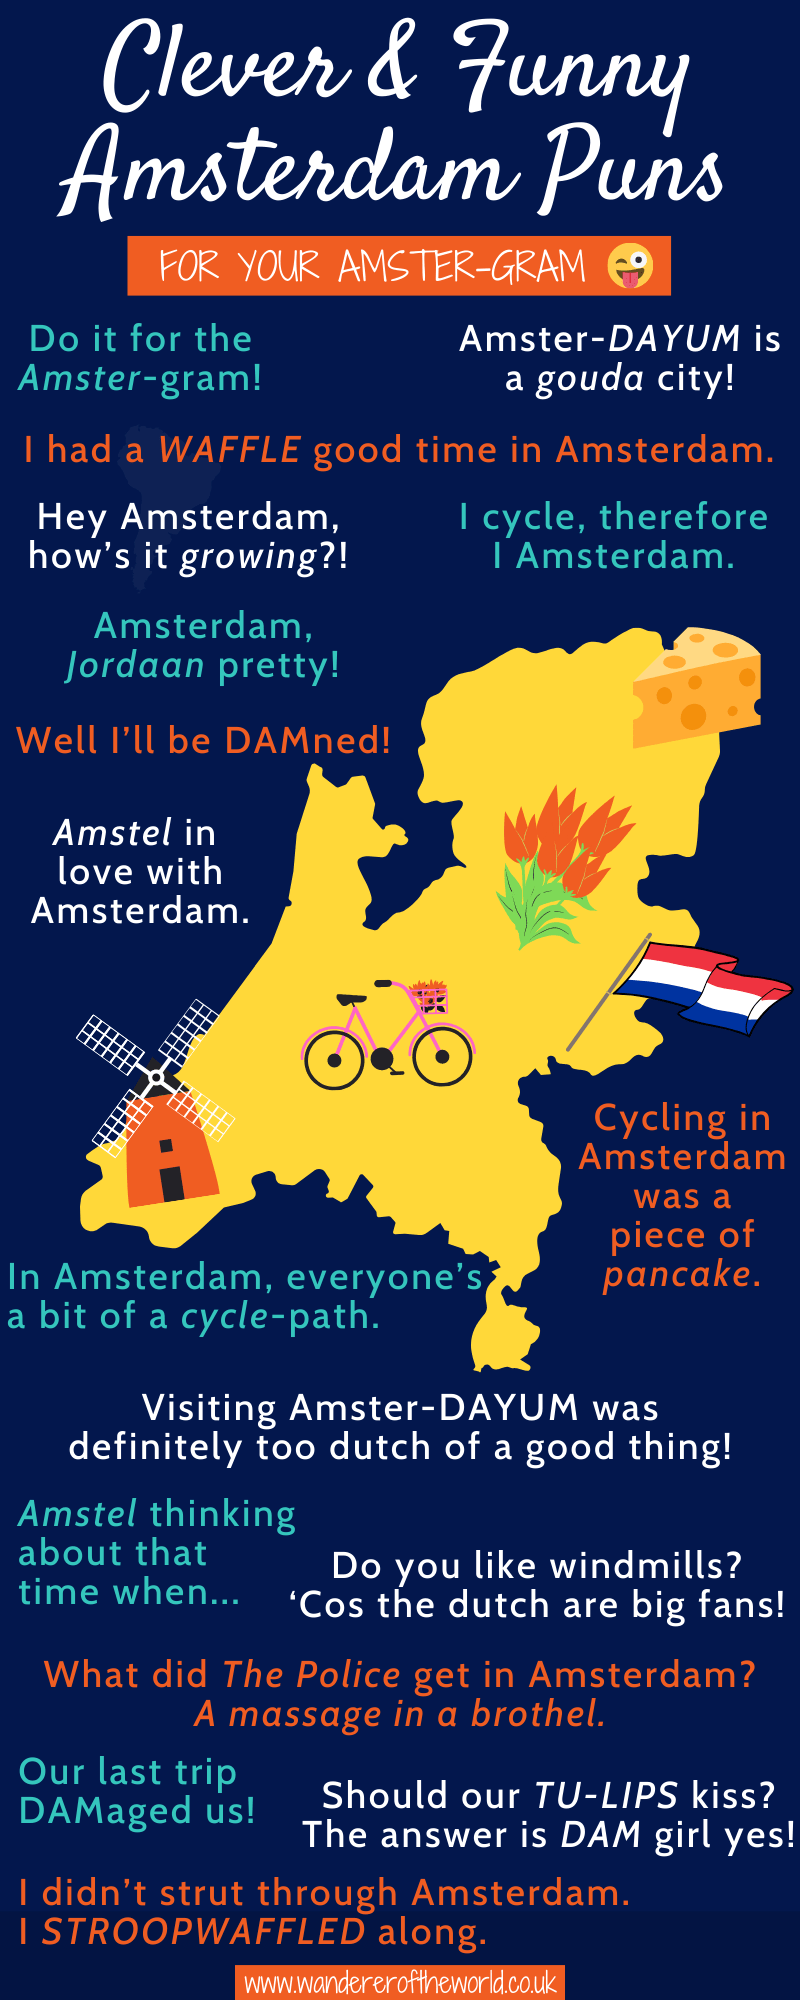 Funny Amsterdam Puns & Clever Amsterdam Instagram Captions